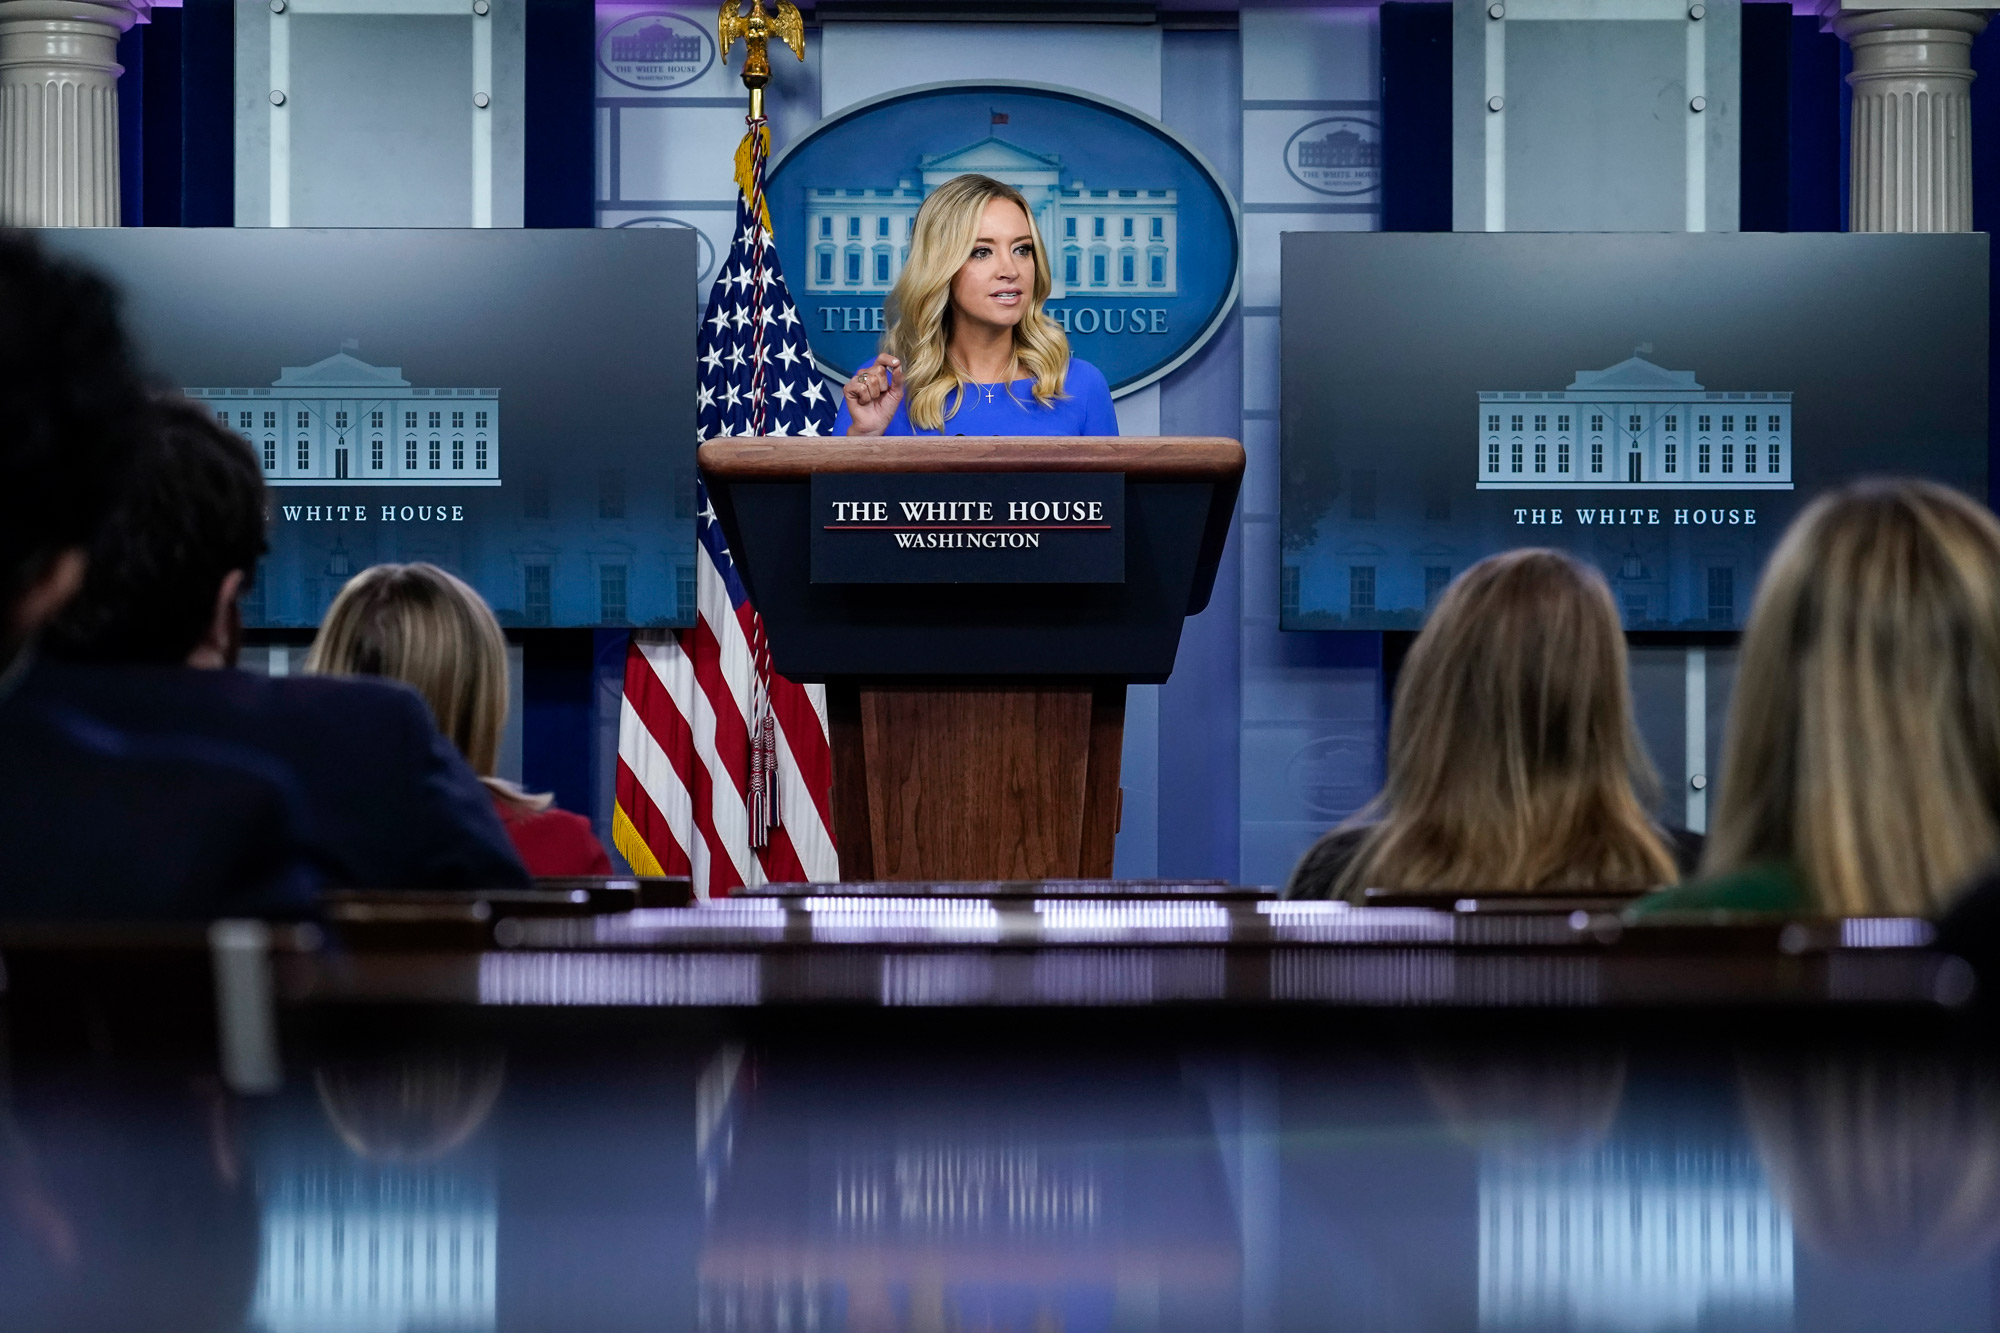 White House Press Secretary Kayleigh McEnany speaks during a press briefing at the White House on October 1 in Washington, DC.